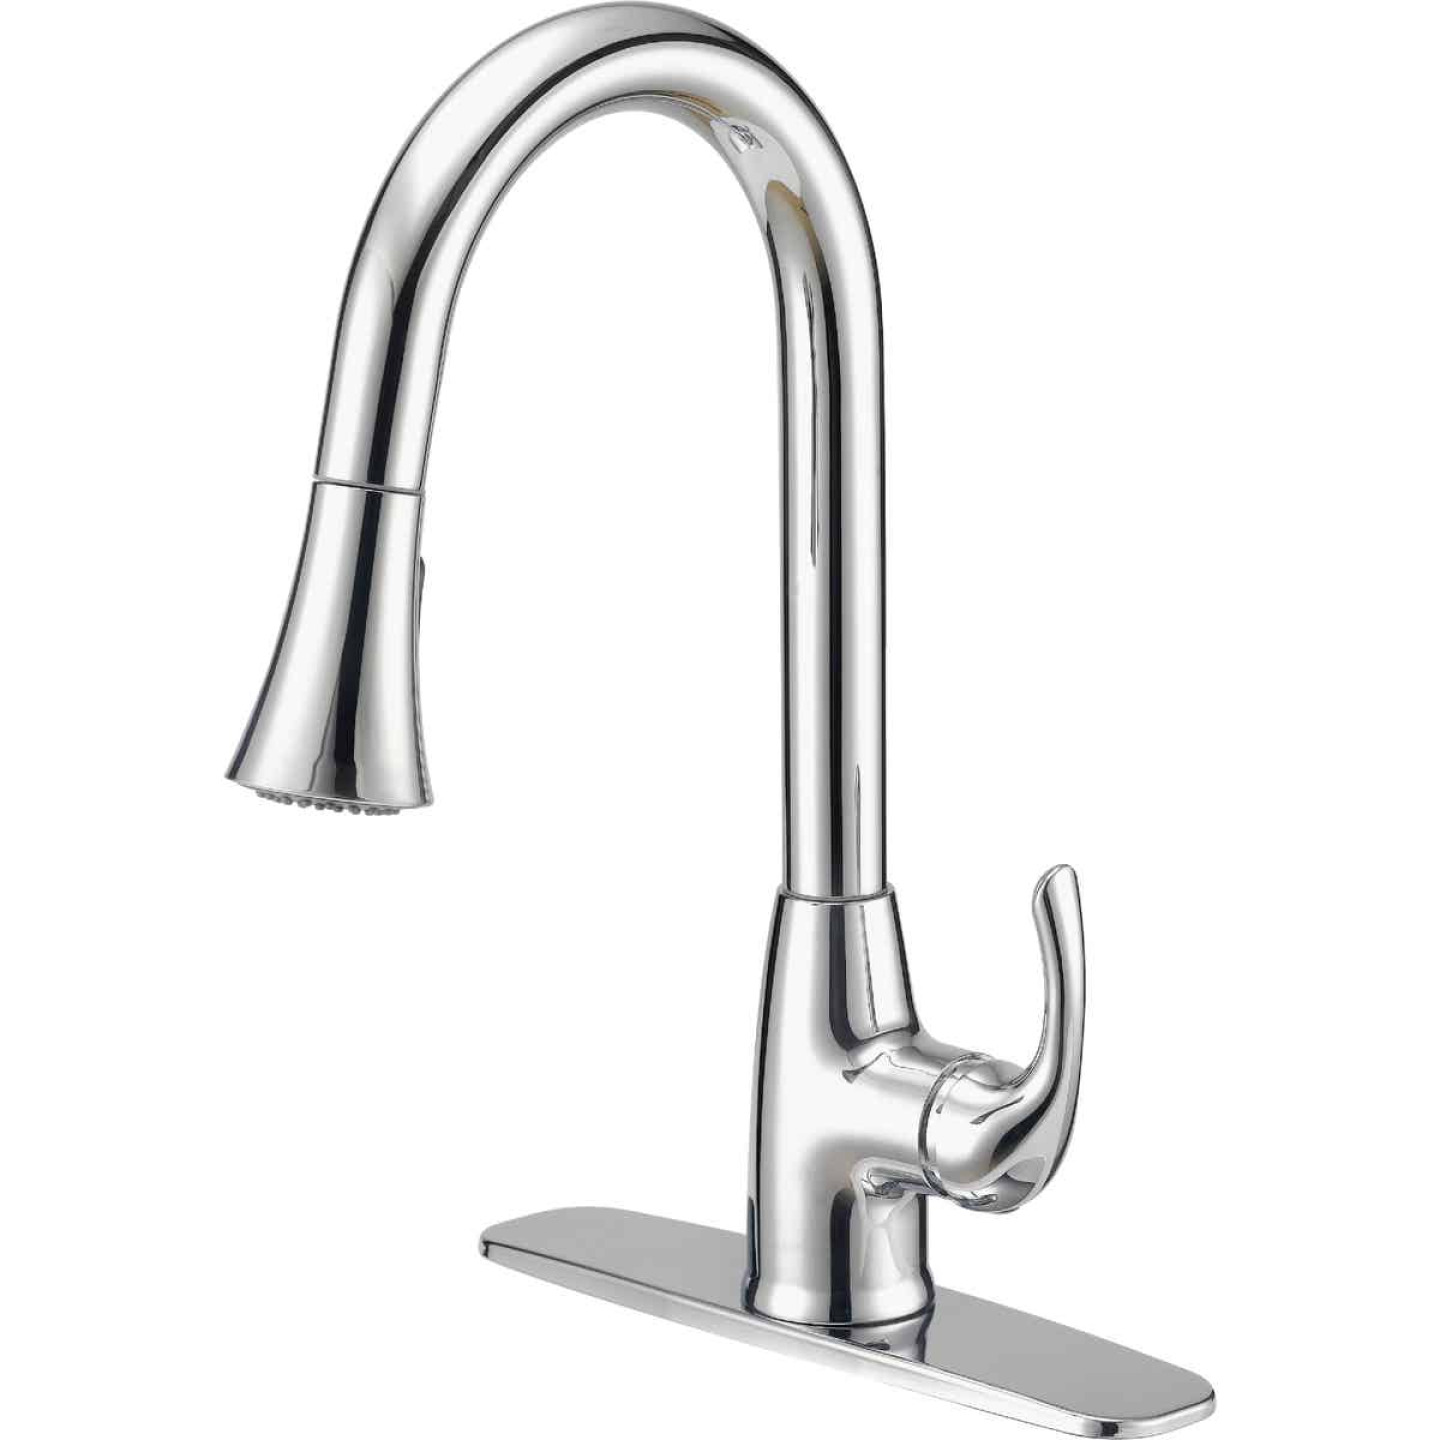 Home Impressions Single Handle Lever Pull-Down Kitchen Faucet with Spray, Chrome Image 1